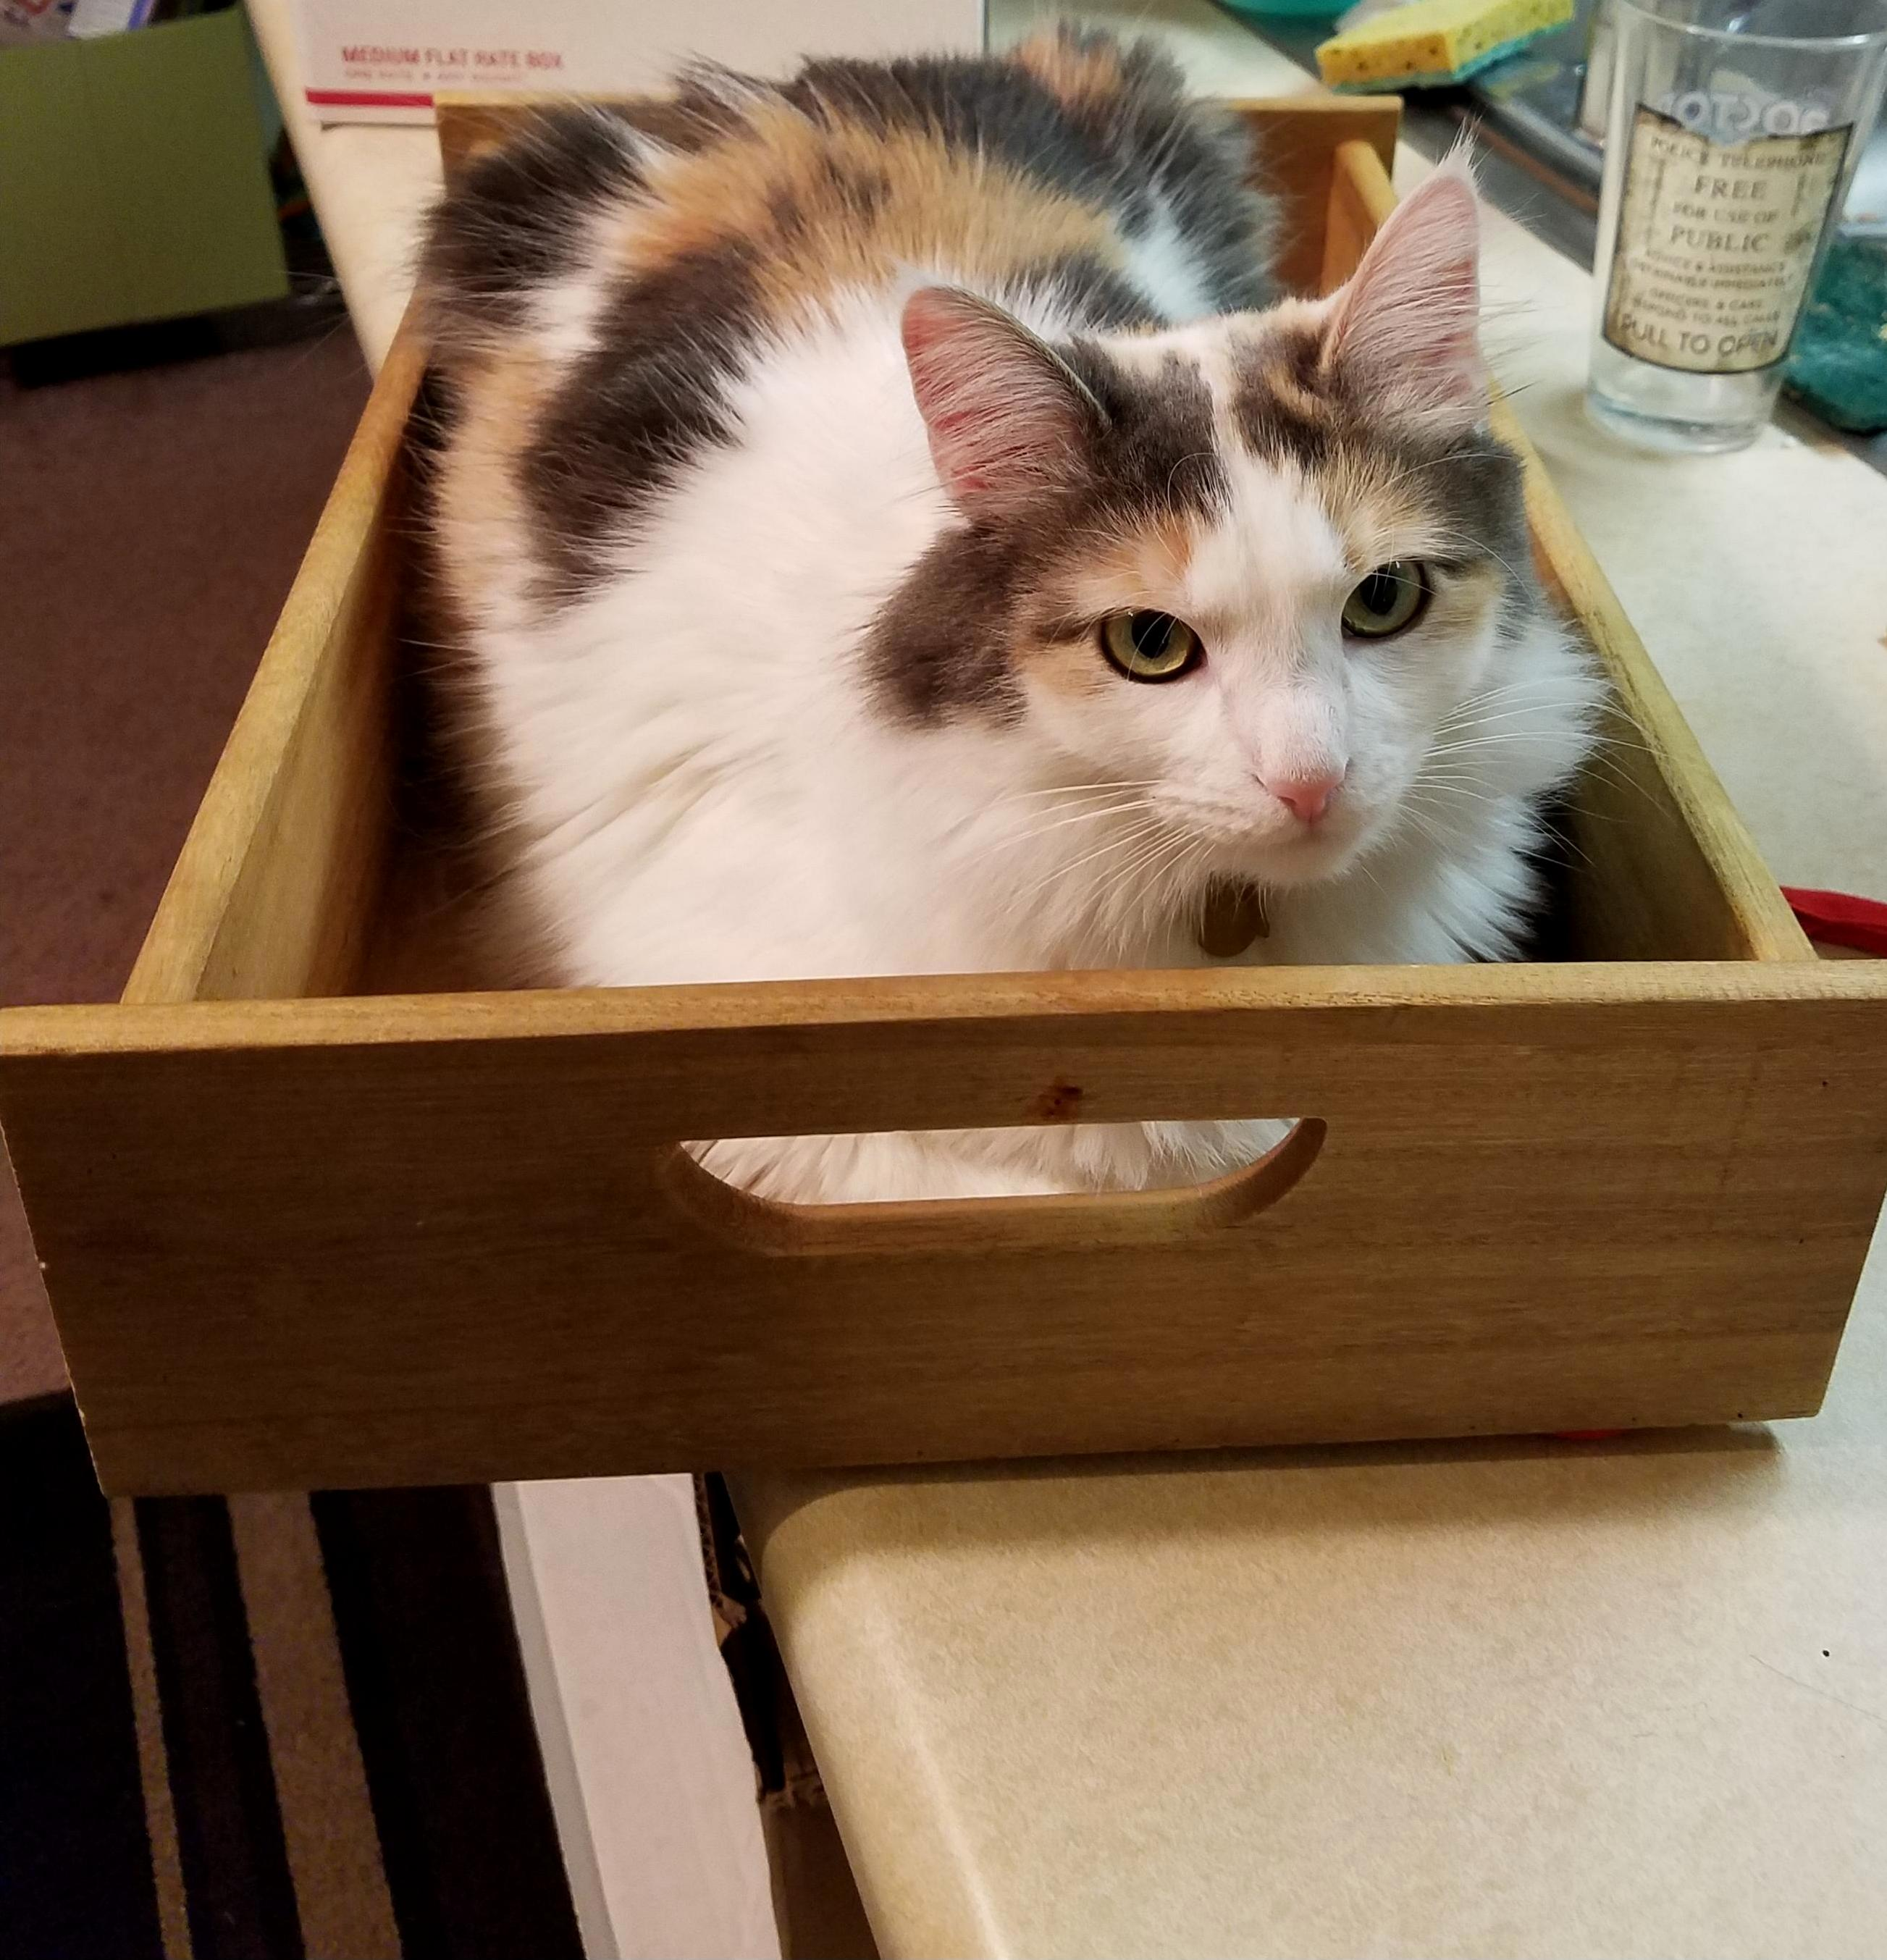 It doesnt count as being on the counter if im in this box